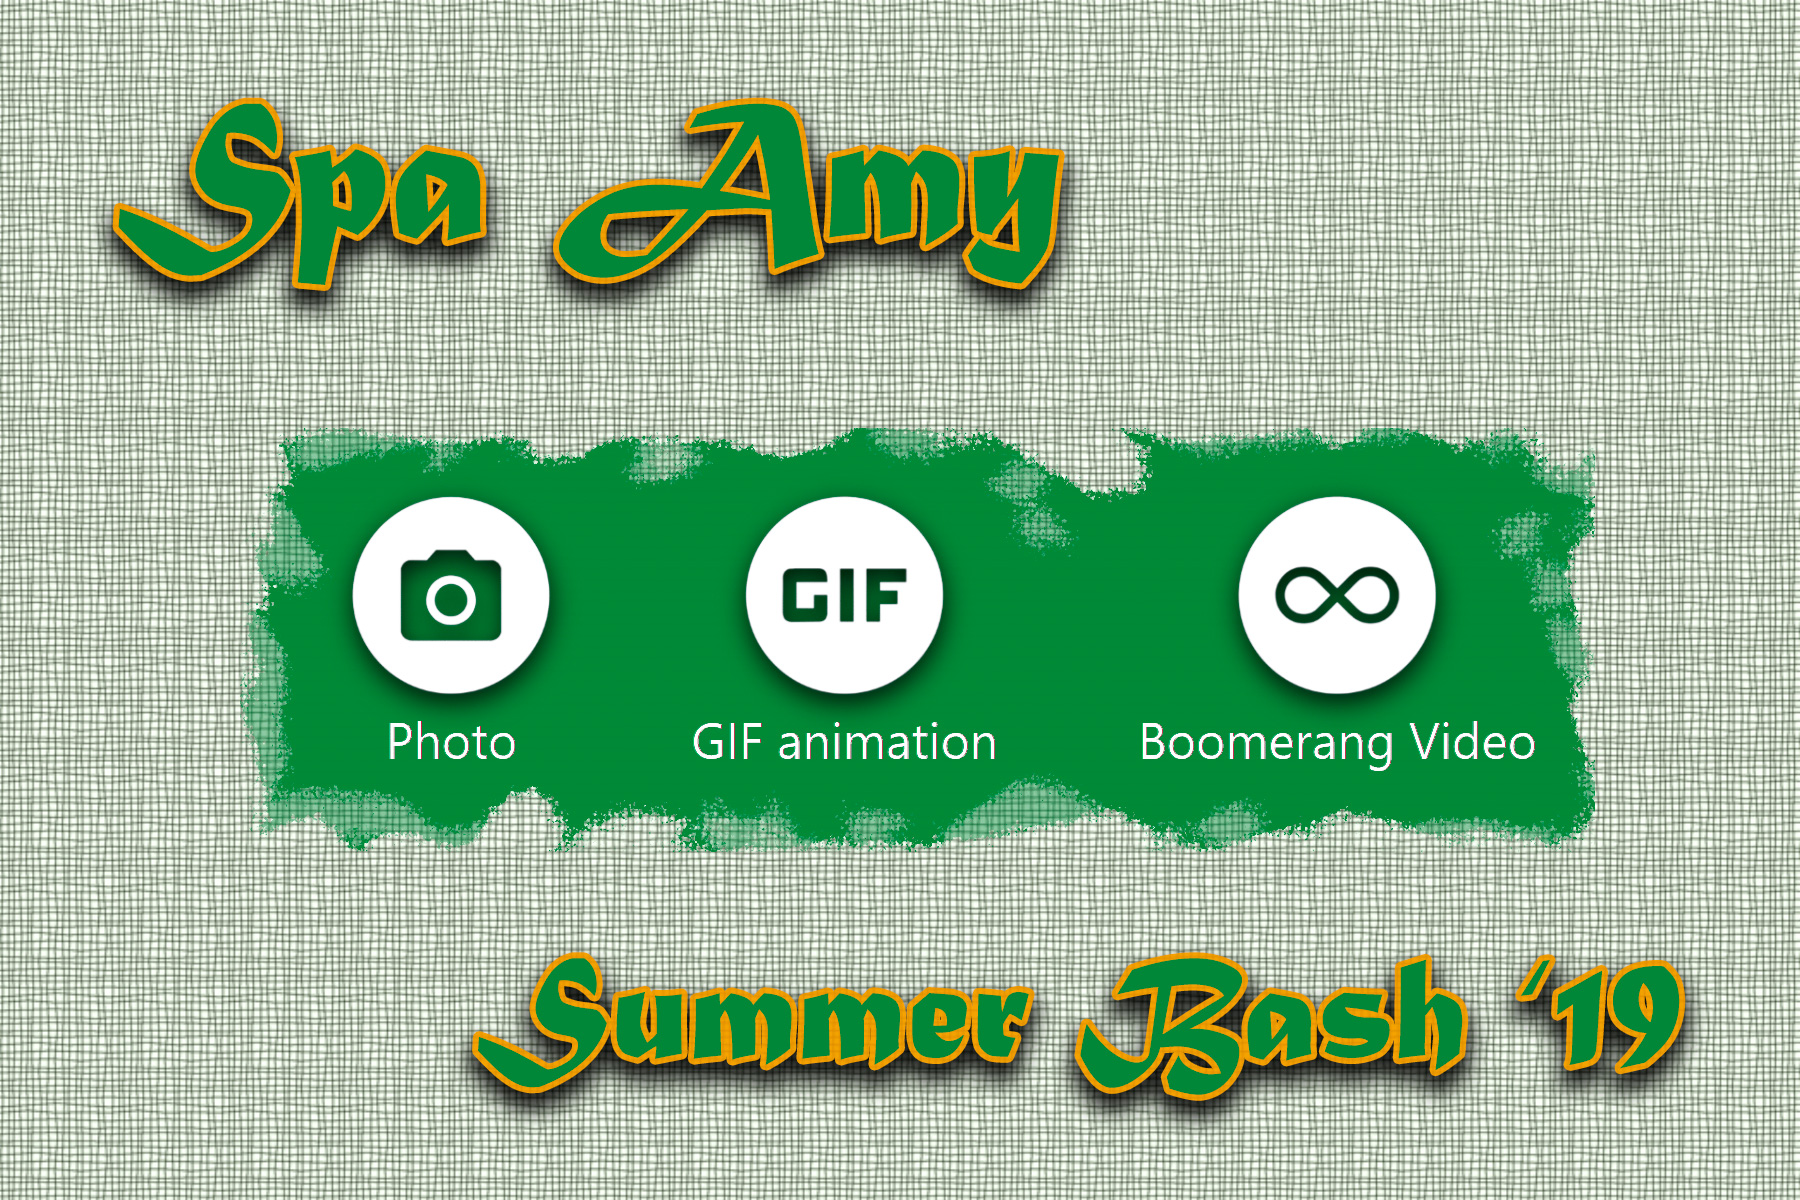 Personalize your event - We personalize the touchscreen, photos, souvenir prints and video templates with your colors, logo, event name, etc.